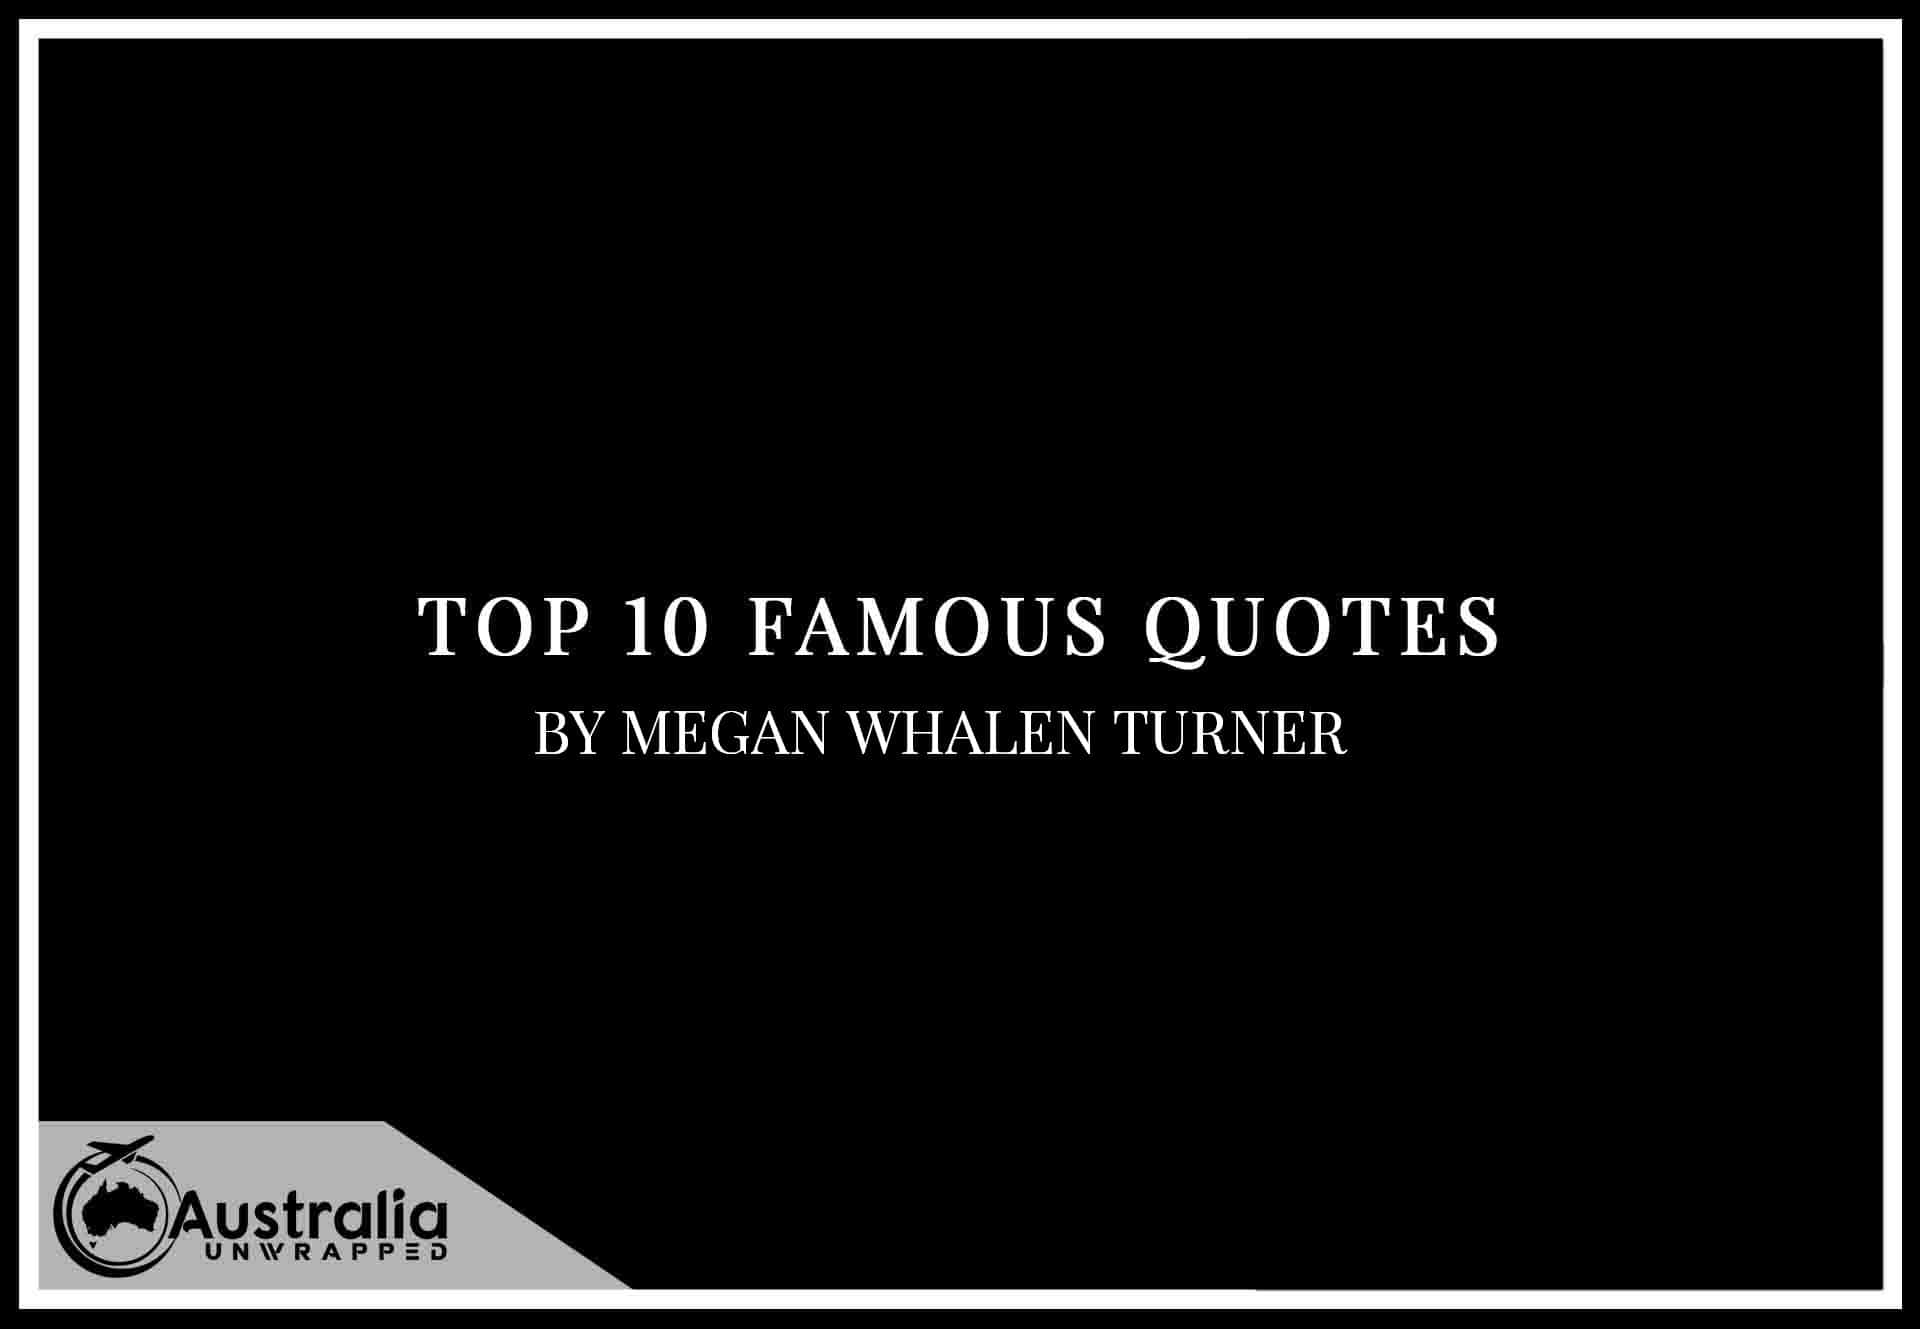 Top 10 Famous Quotes by Author Megan Whalen Turner